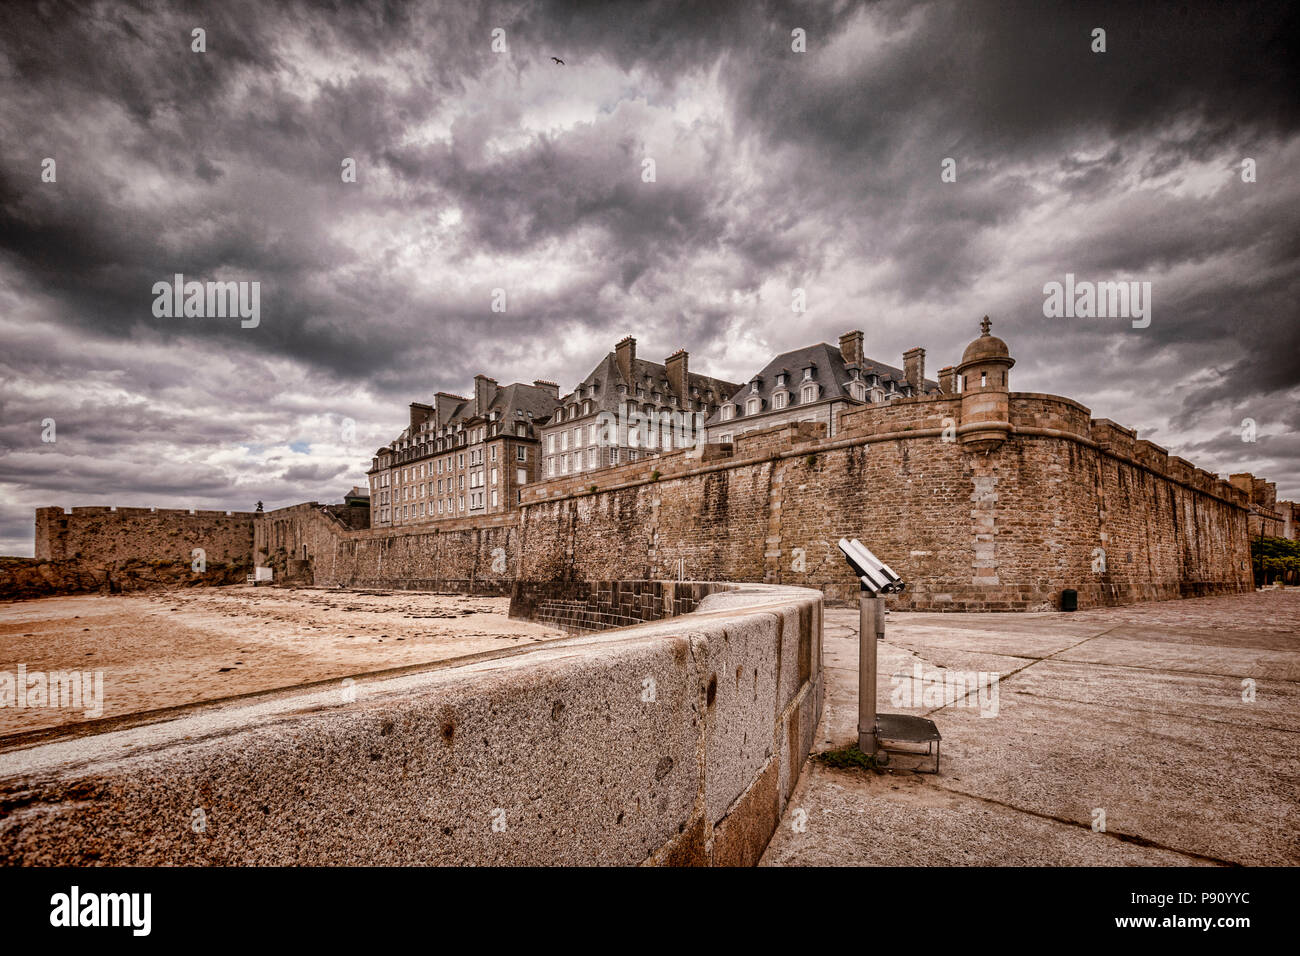 The old town and ramparts of Saint-Malo. - Stock Image